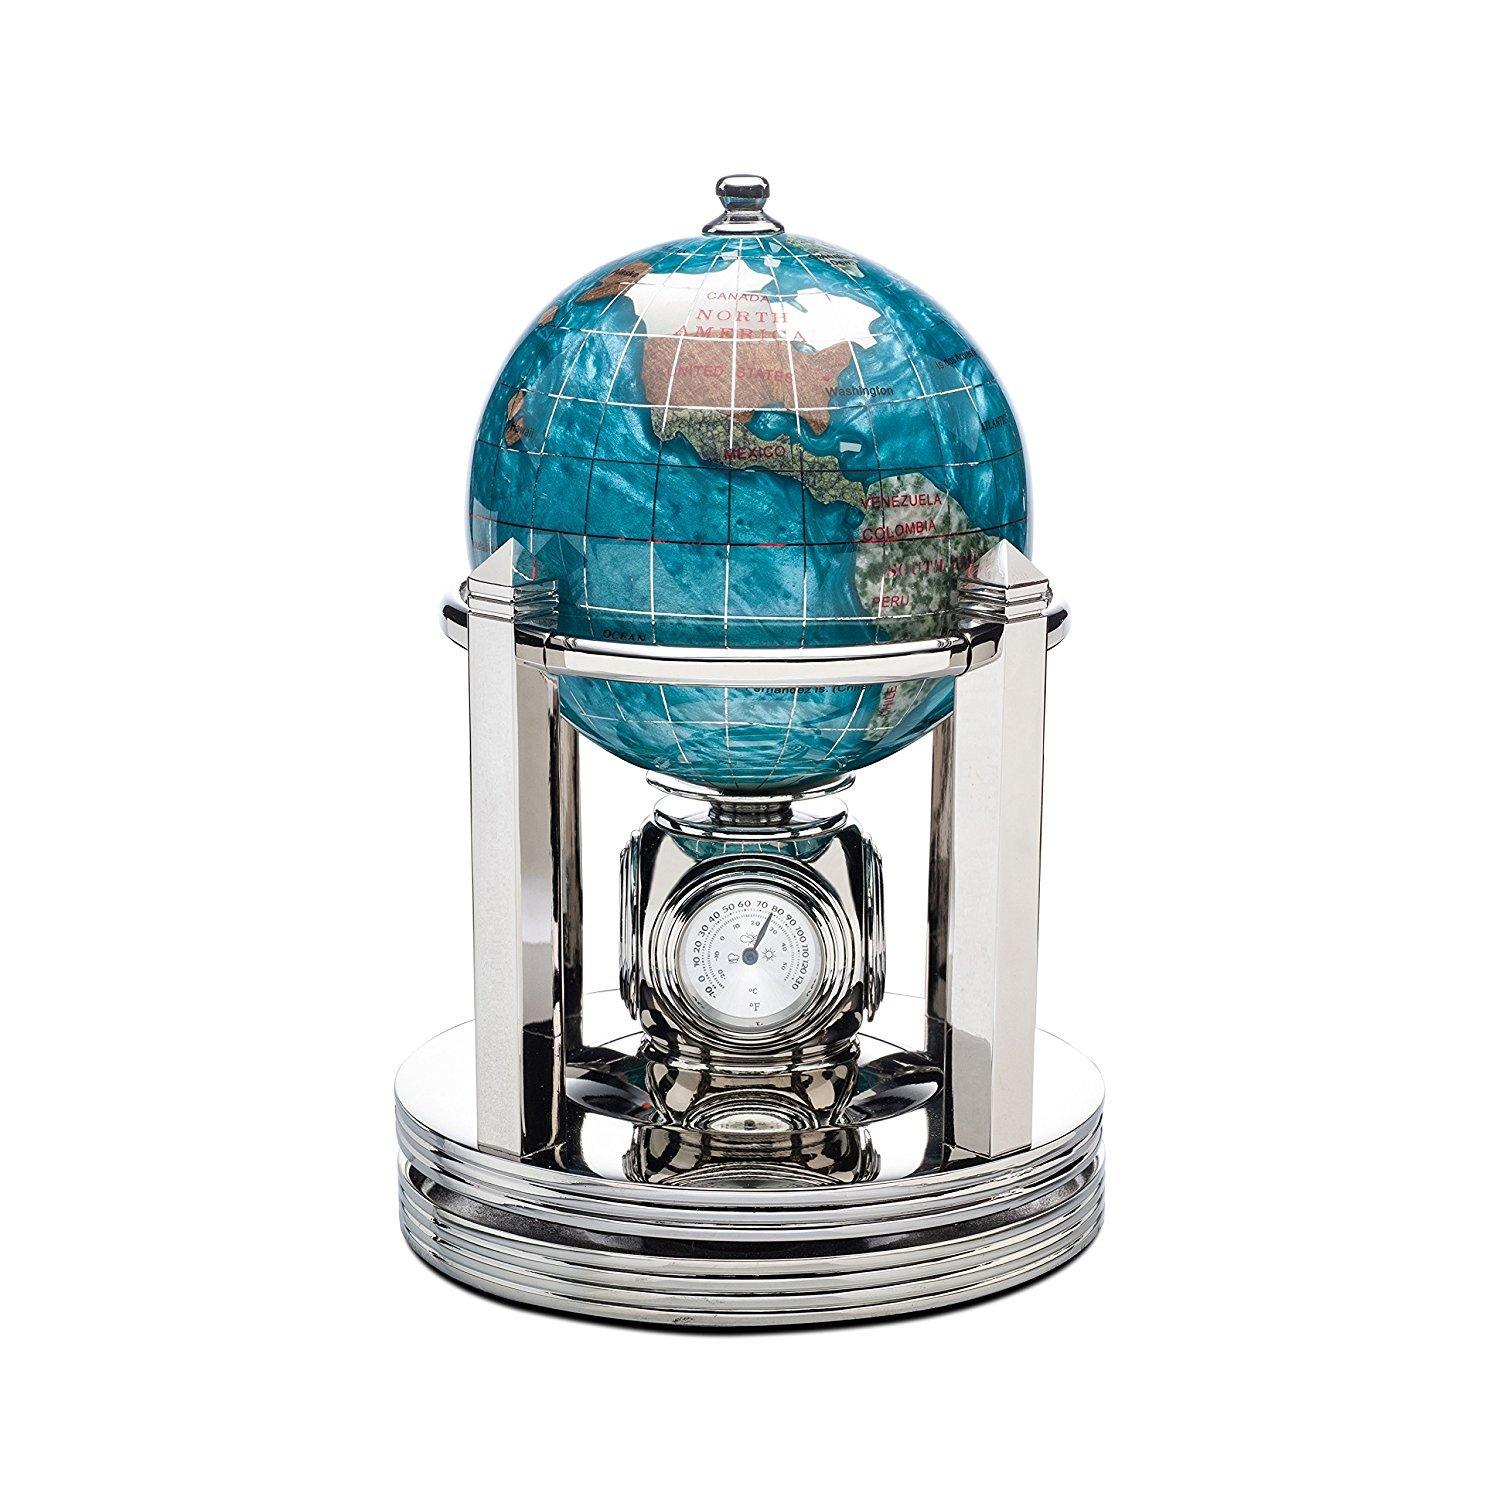 Gemstone Globe with Bahama Blue Opalite Ocean and Bright Silver Galleon Rotating Base by Alexander Kalifano: with clock, thermometers and hygrometer